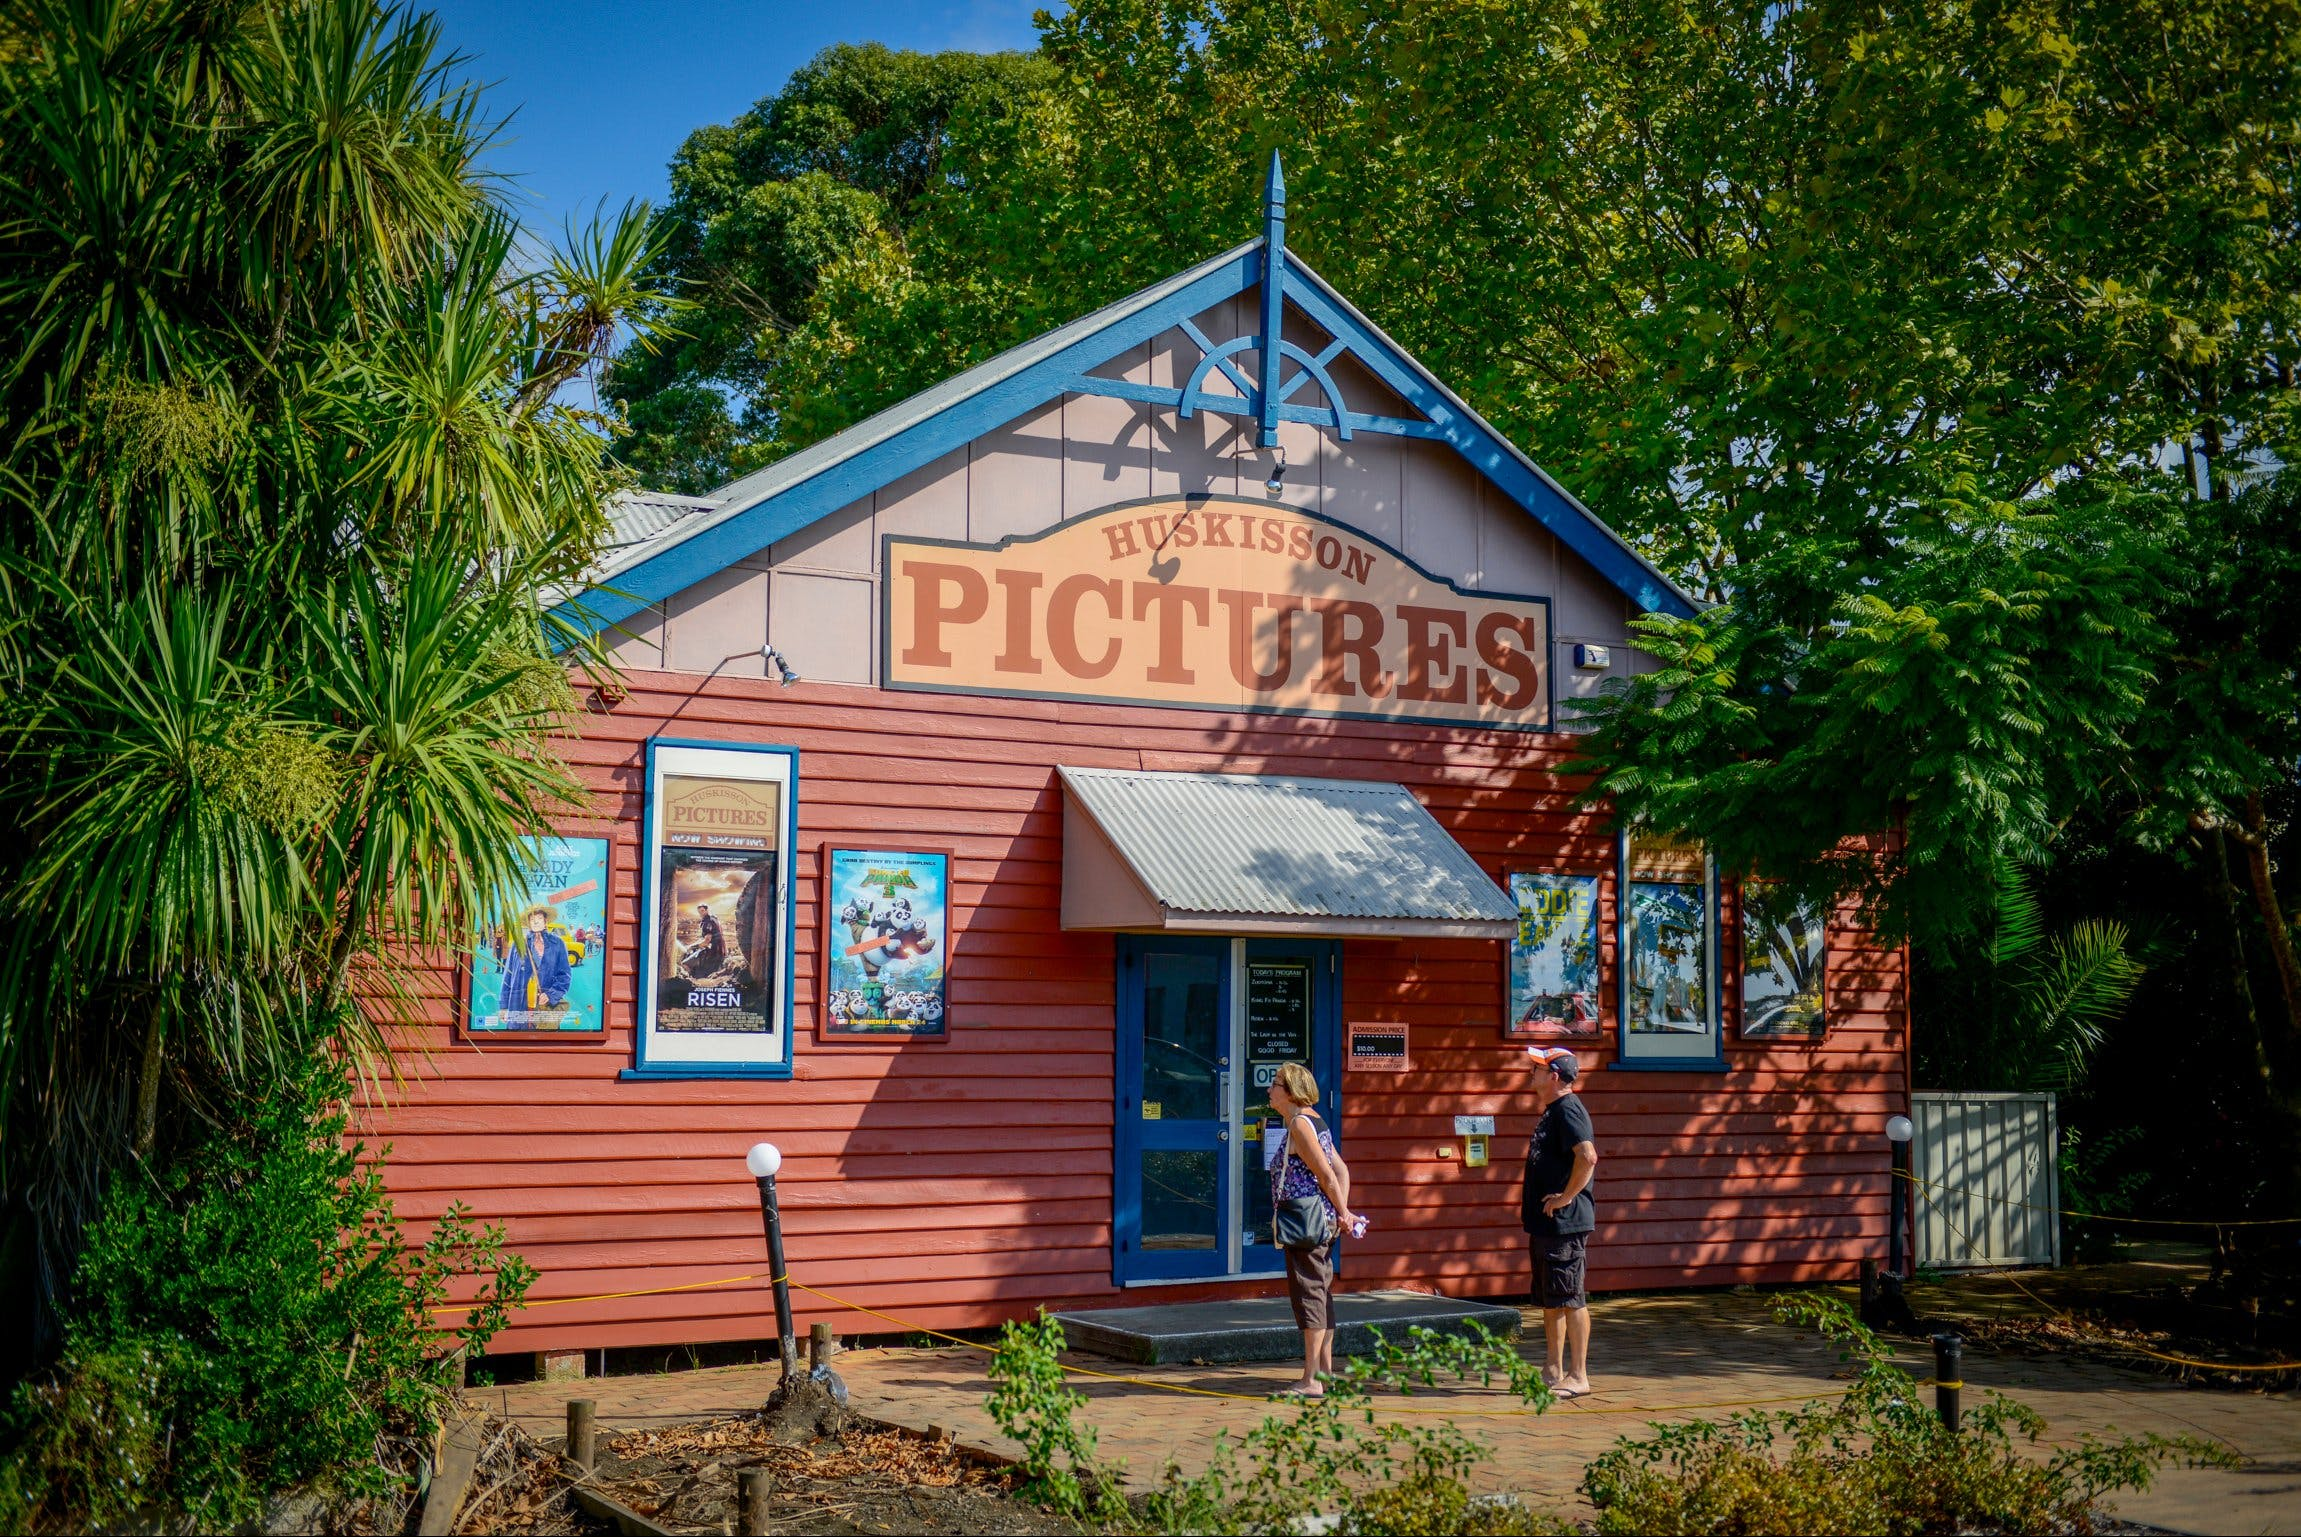 Huskisson Pictures - Mackay Tourism